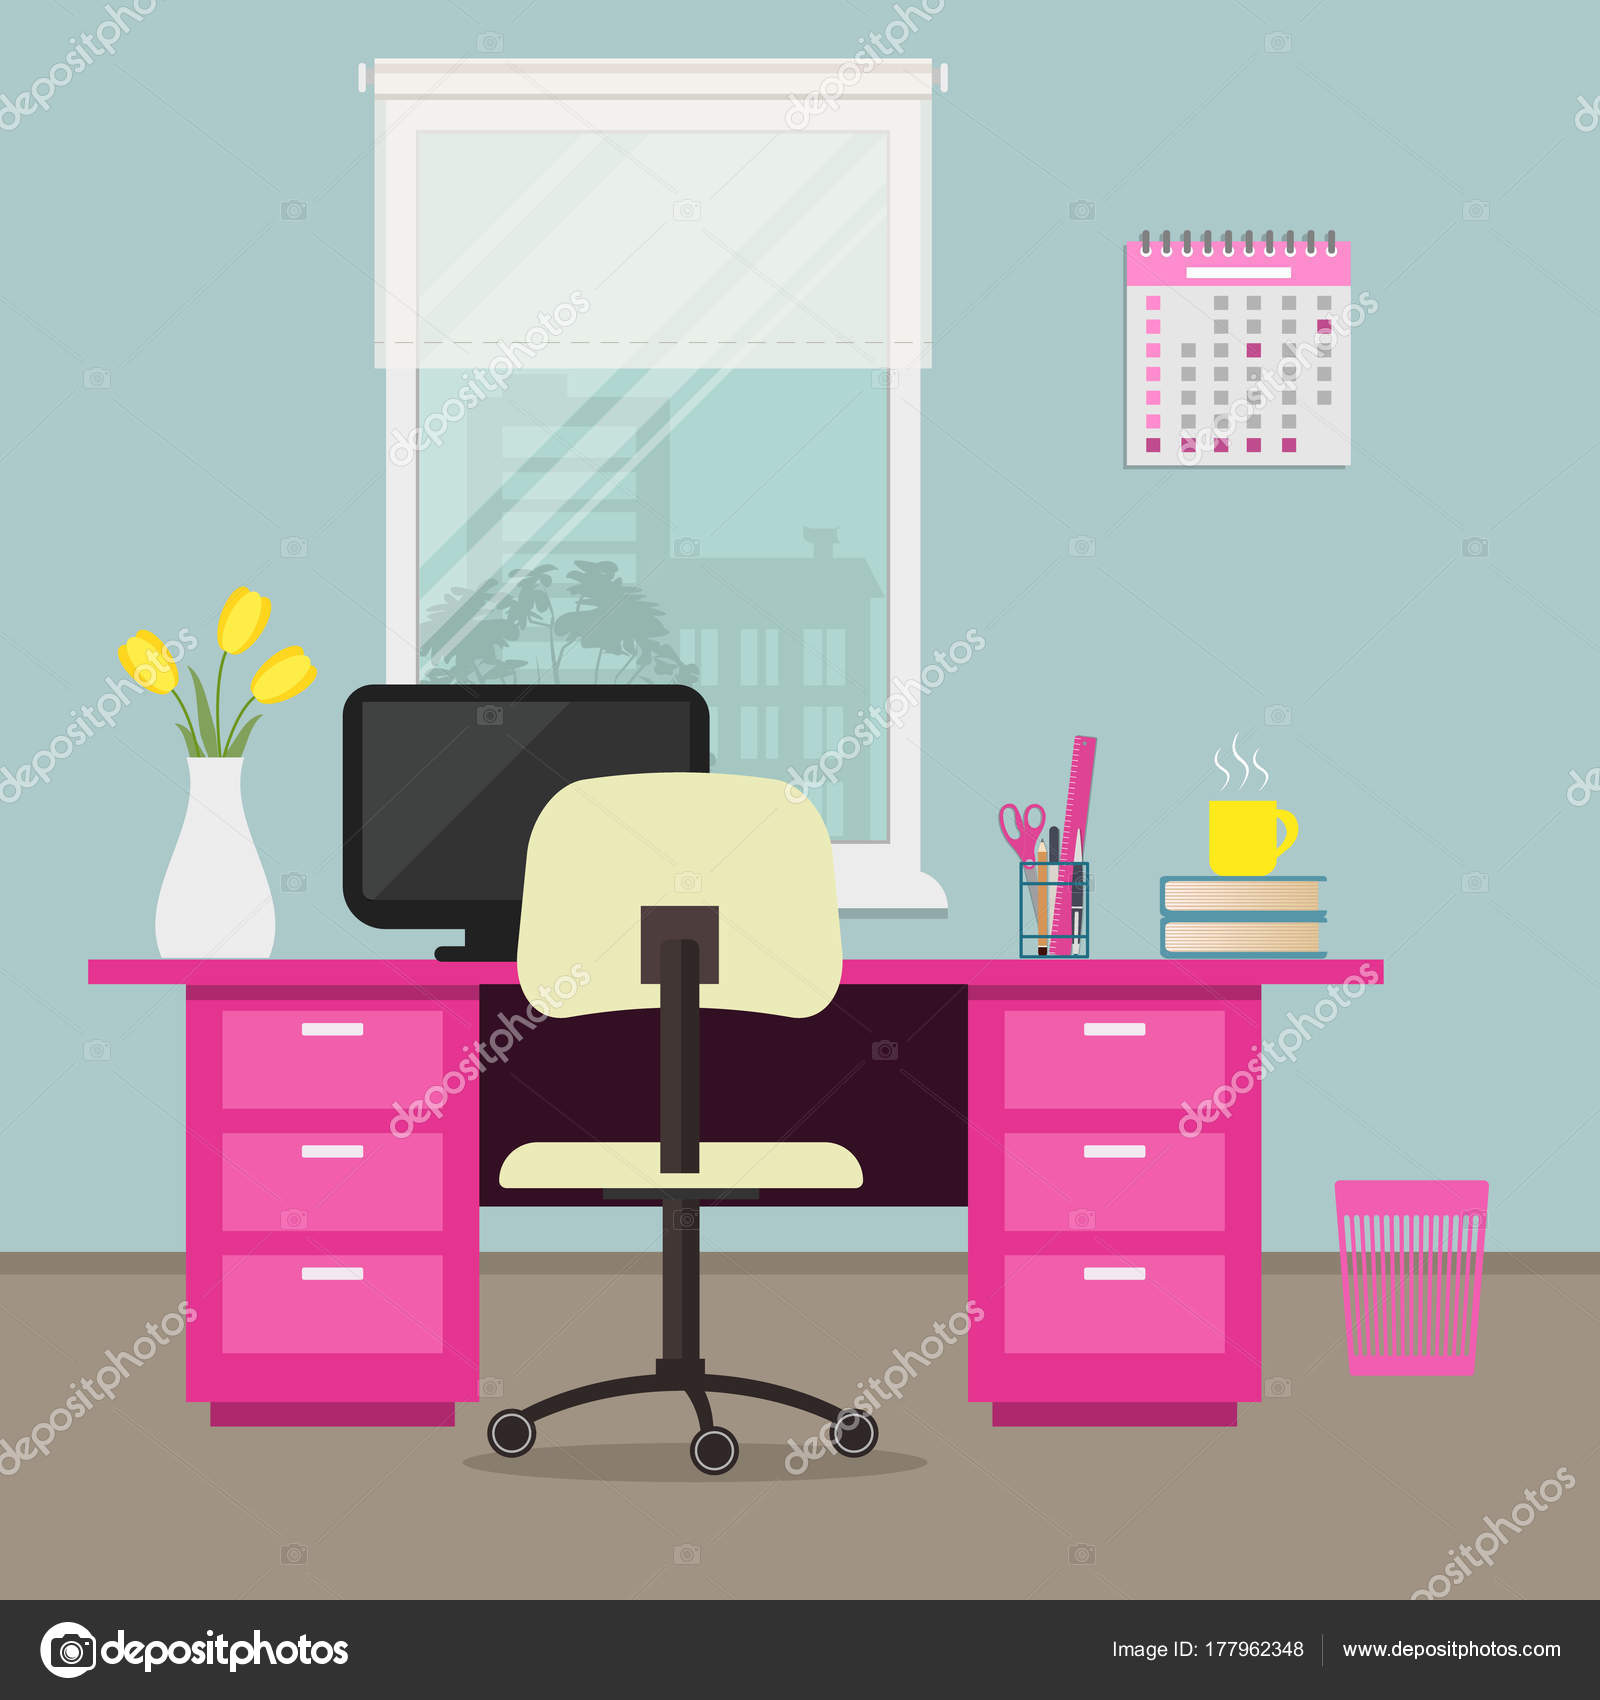 Office In A Pink Color Workplace Home There Is Desk Chair Computer Calendar Vase With Tulips And Other Objects On Window